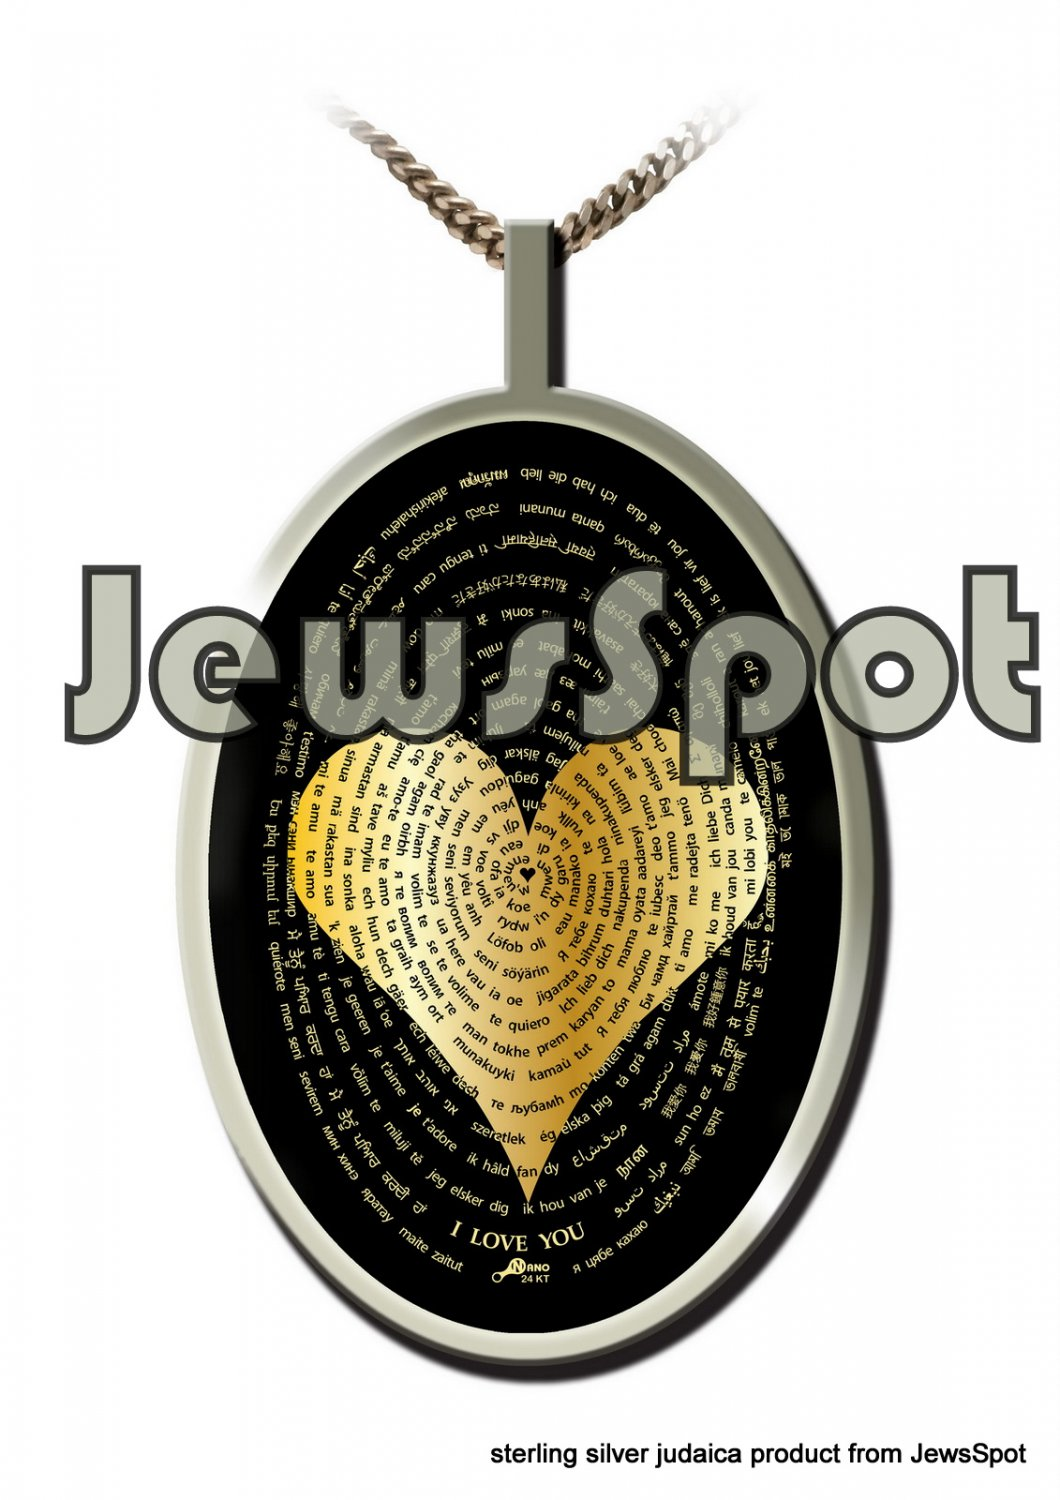 """SS PENDANT NANNO 24 KT GOLD IMPRINT- """"I LOVE YOU"""" IN 120 LANGUAGES + CHAIN, BOX, MAGNIFYING GLASS"""